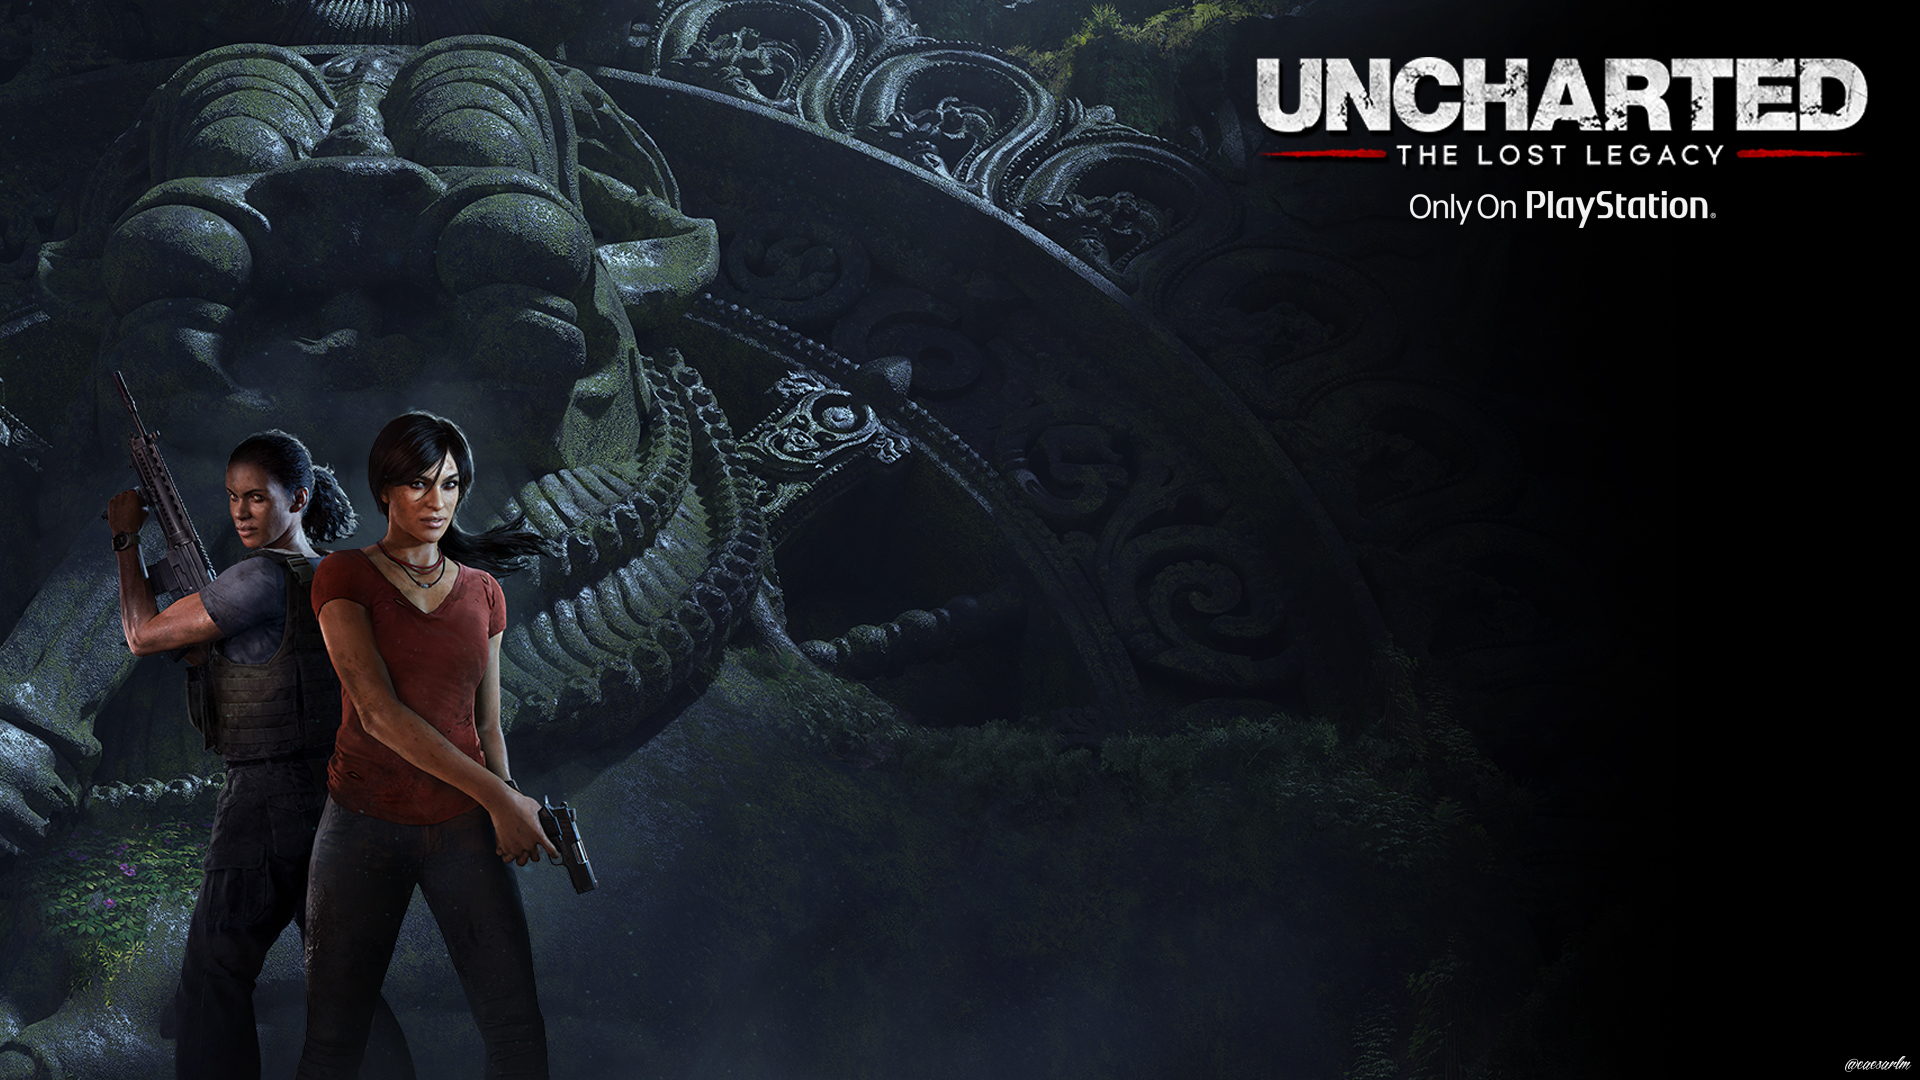 Uncharted The Lost Legacy Wallpaper By Firawallcesar On Deviantart